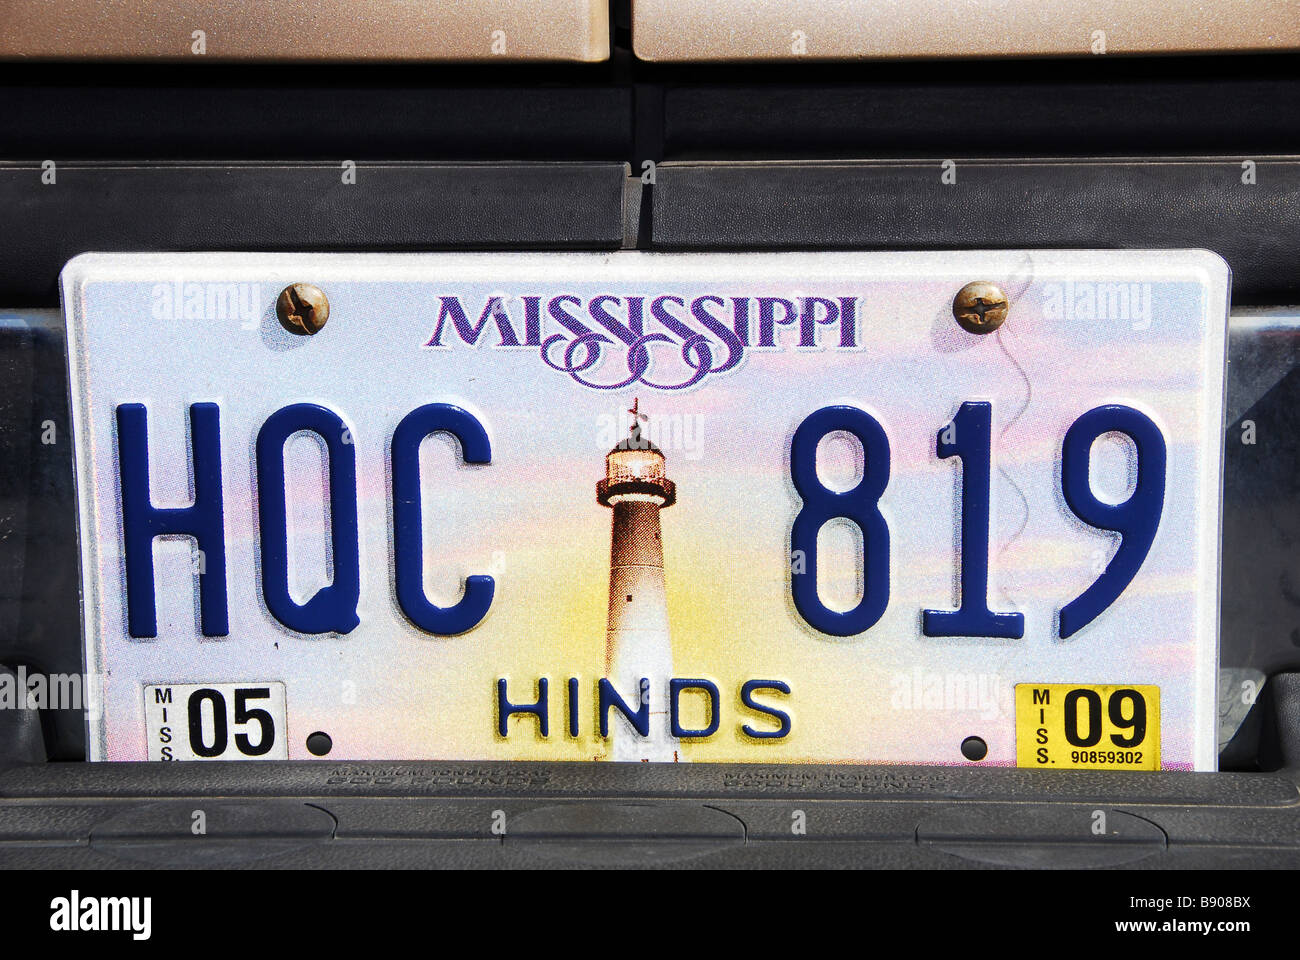 Car plate, Mississippi, United States of America, North America - Stock Image